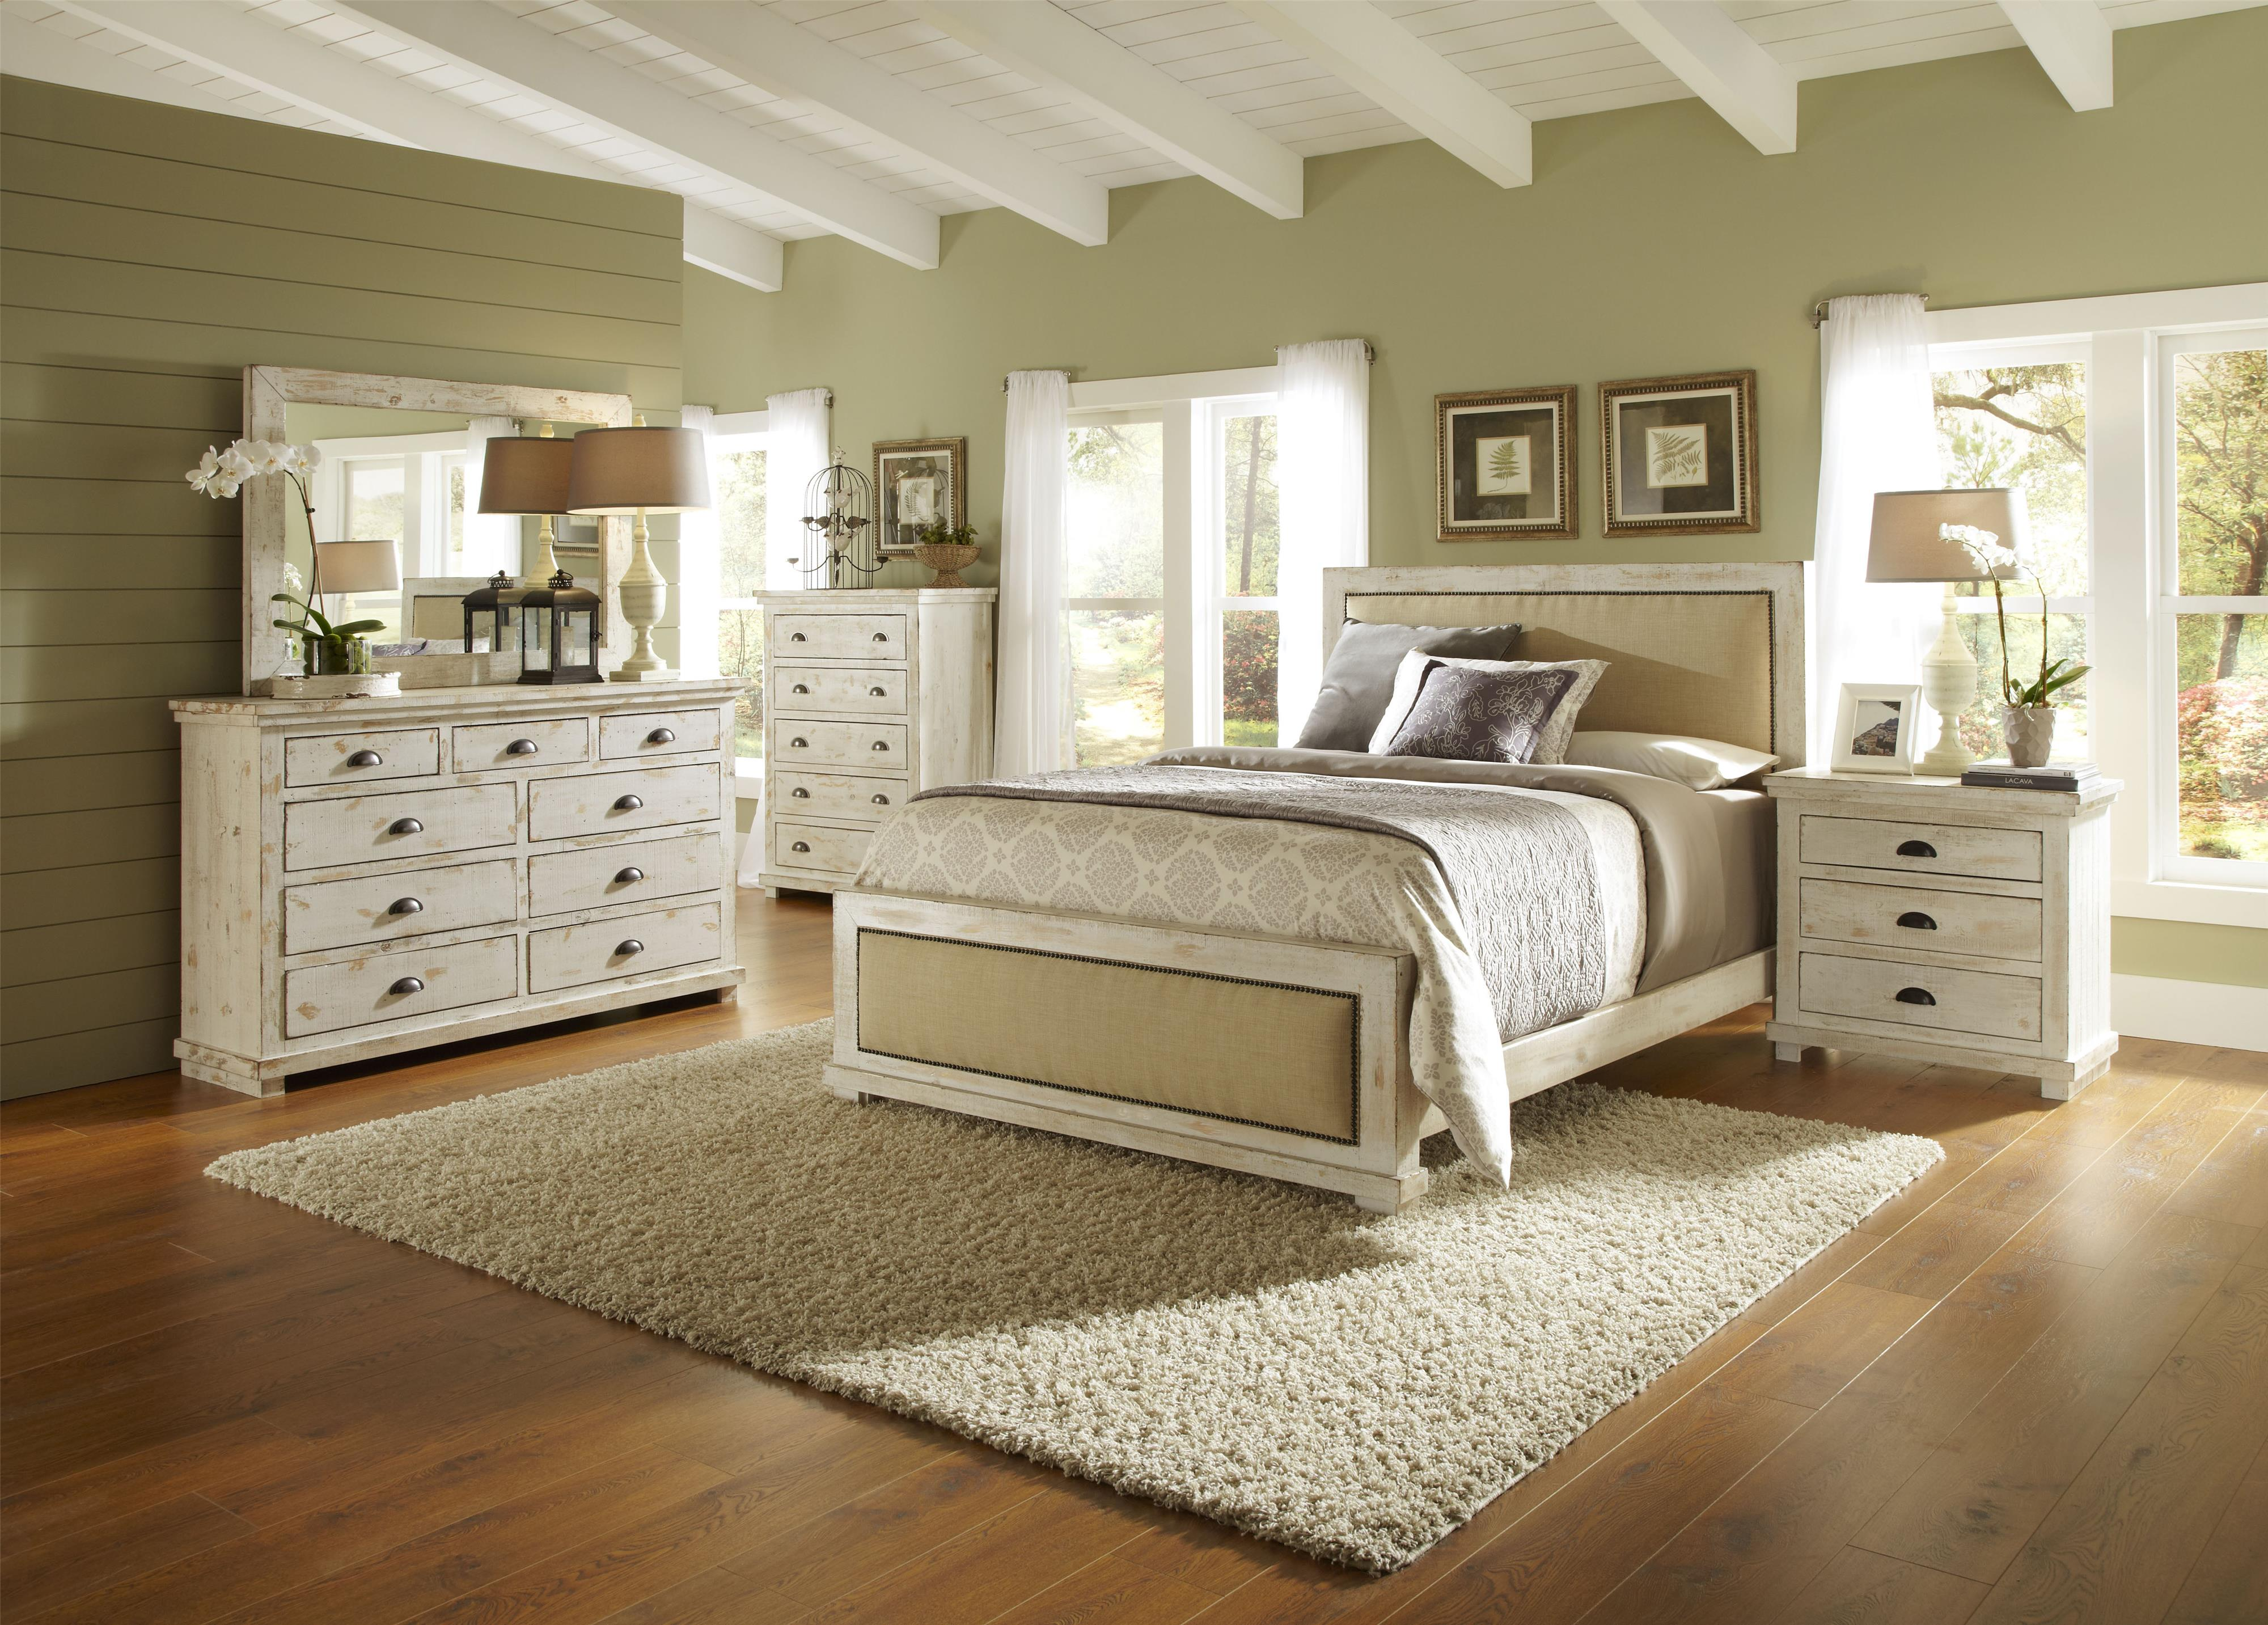 Great wilcox furniture for home furniture with wilcox furniture corpus christi